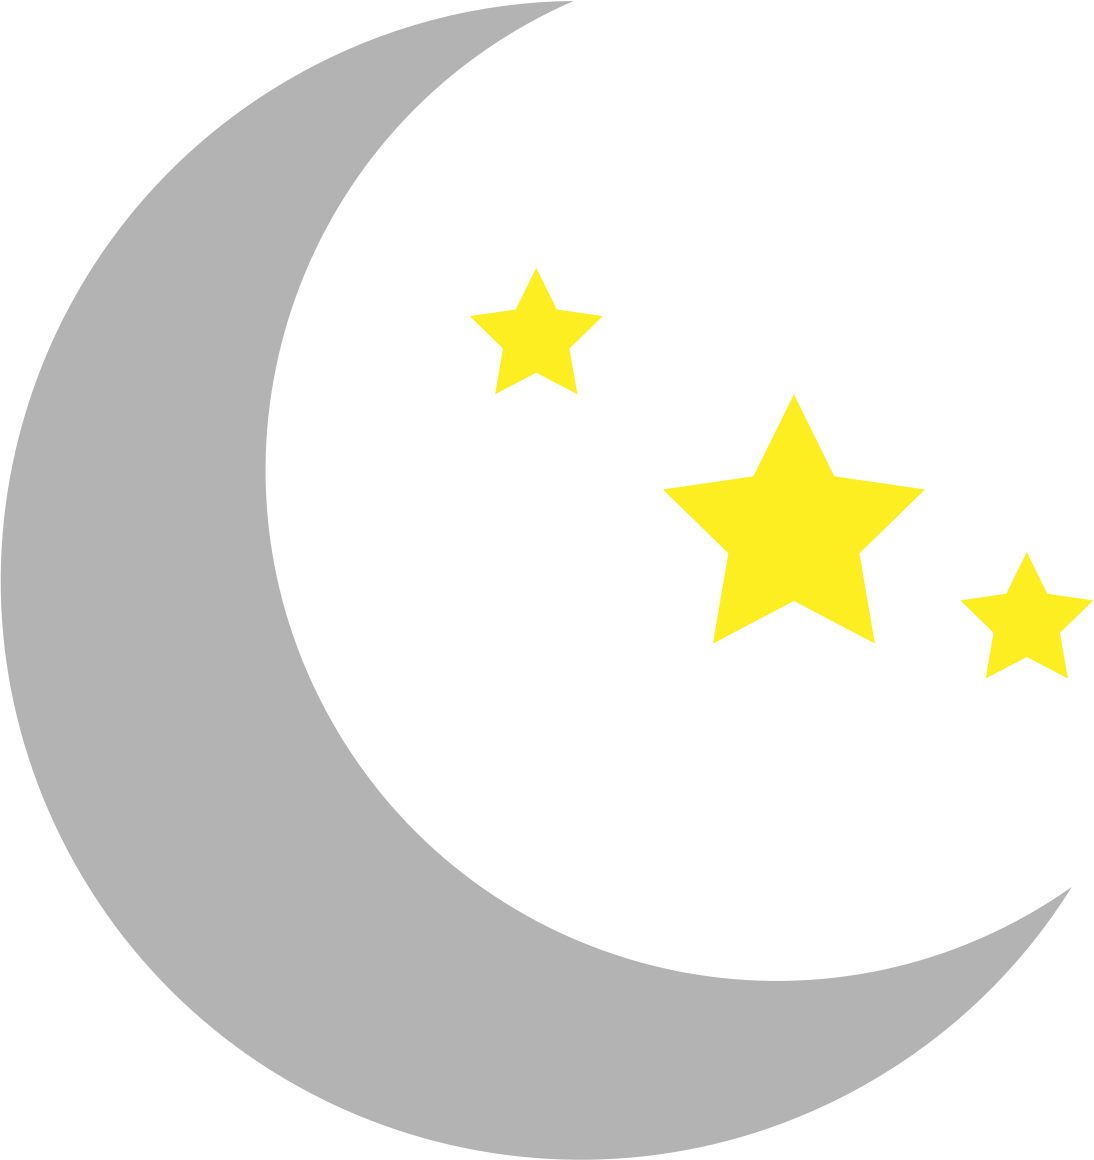 1094x1160 Moons And Stars Clipart